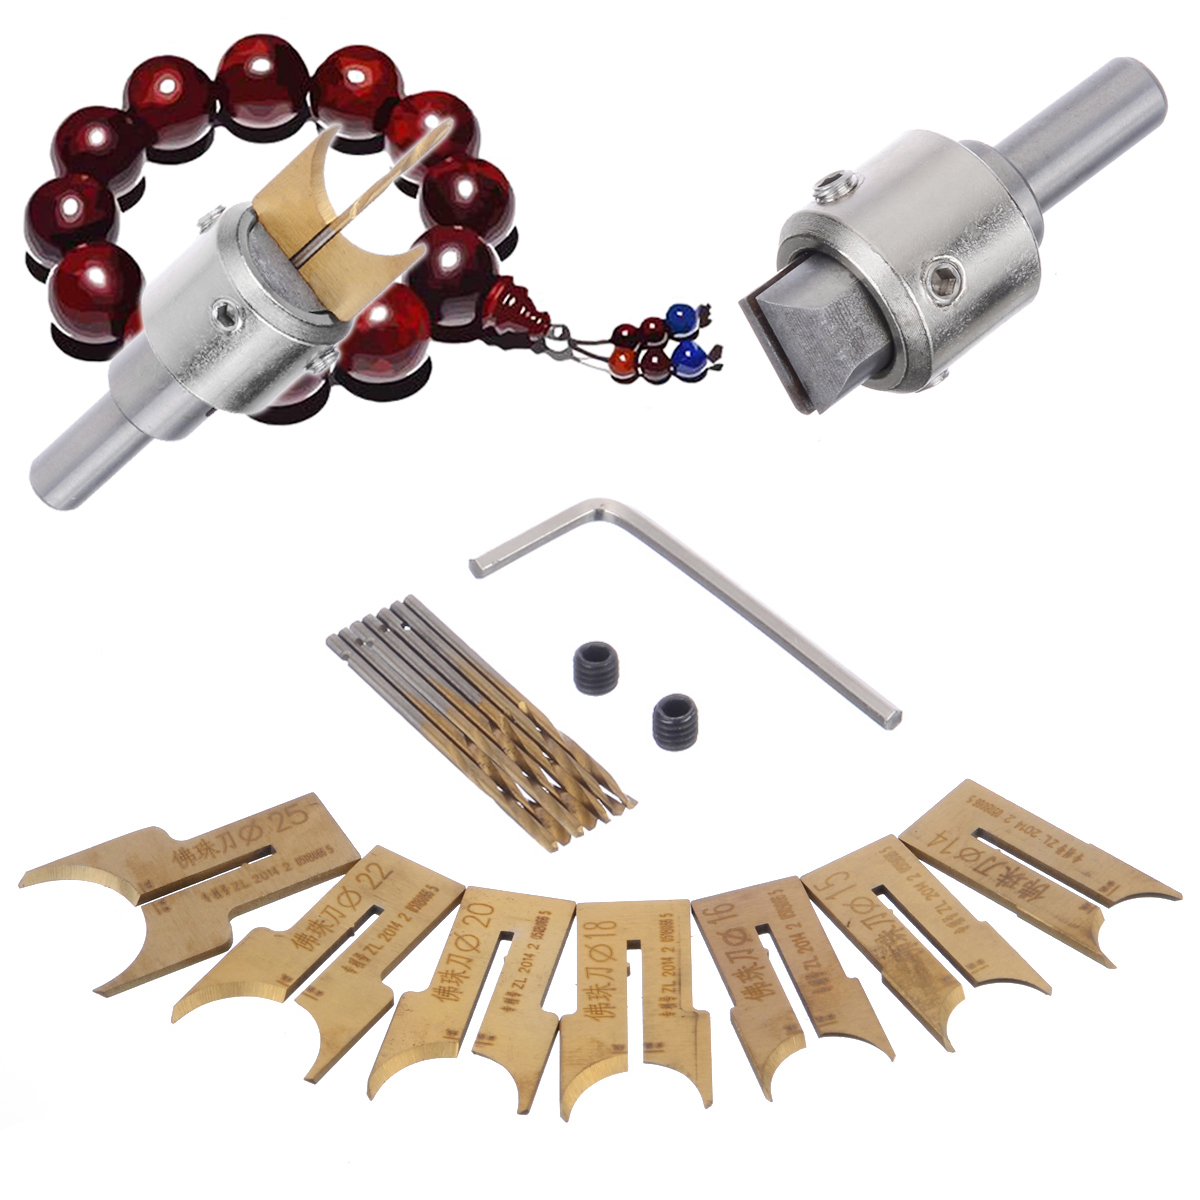 16pcs Wooden Beads Drill Bits Set 14/15/16/18/20/22/25mm Carbide Ball Blade Woodworking Milling Cutter Buddha Beads Router Bit